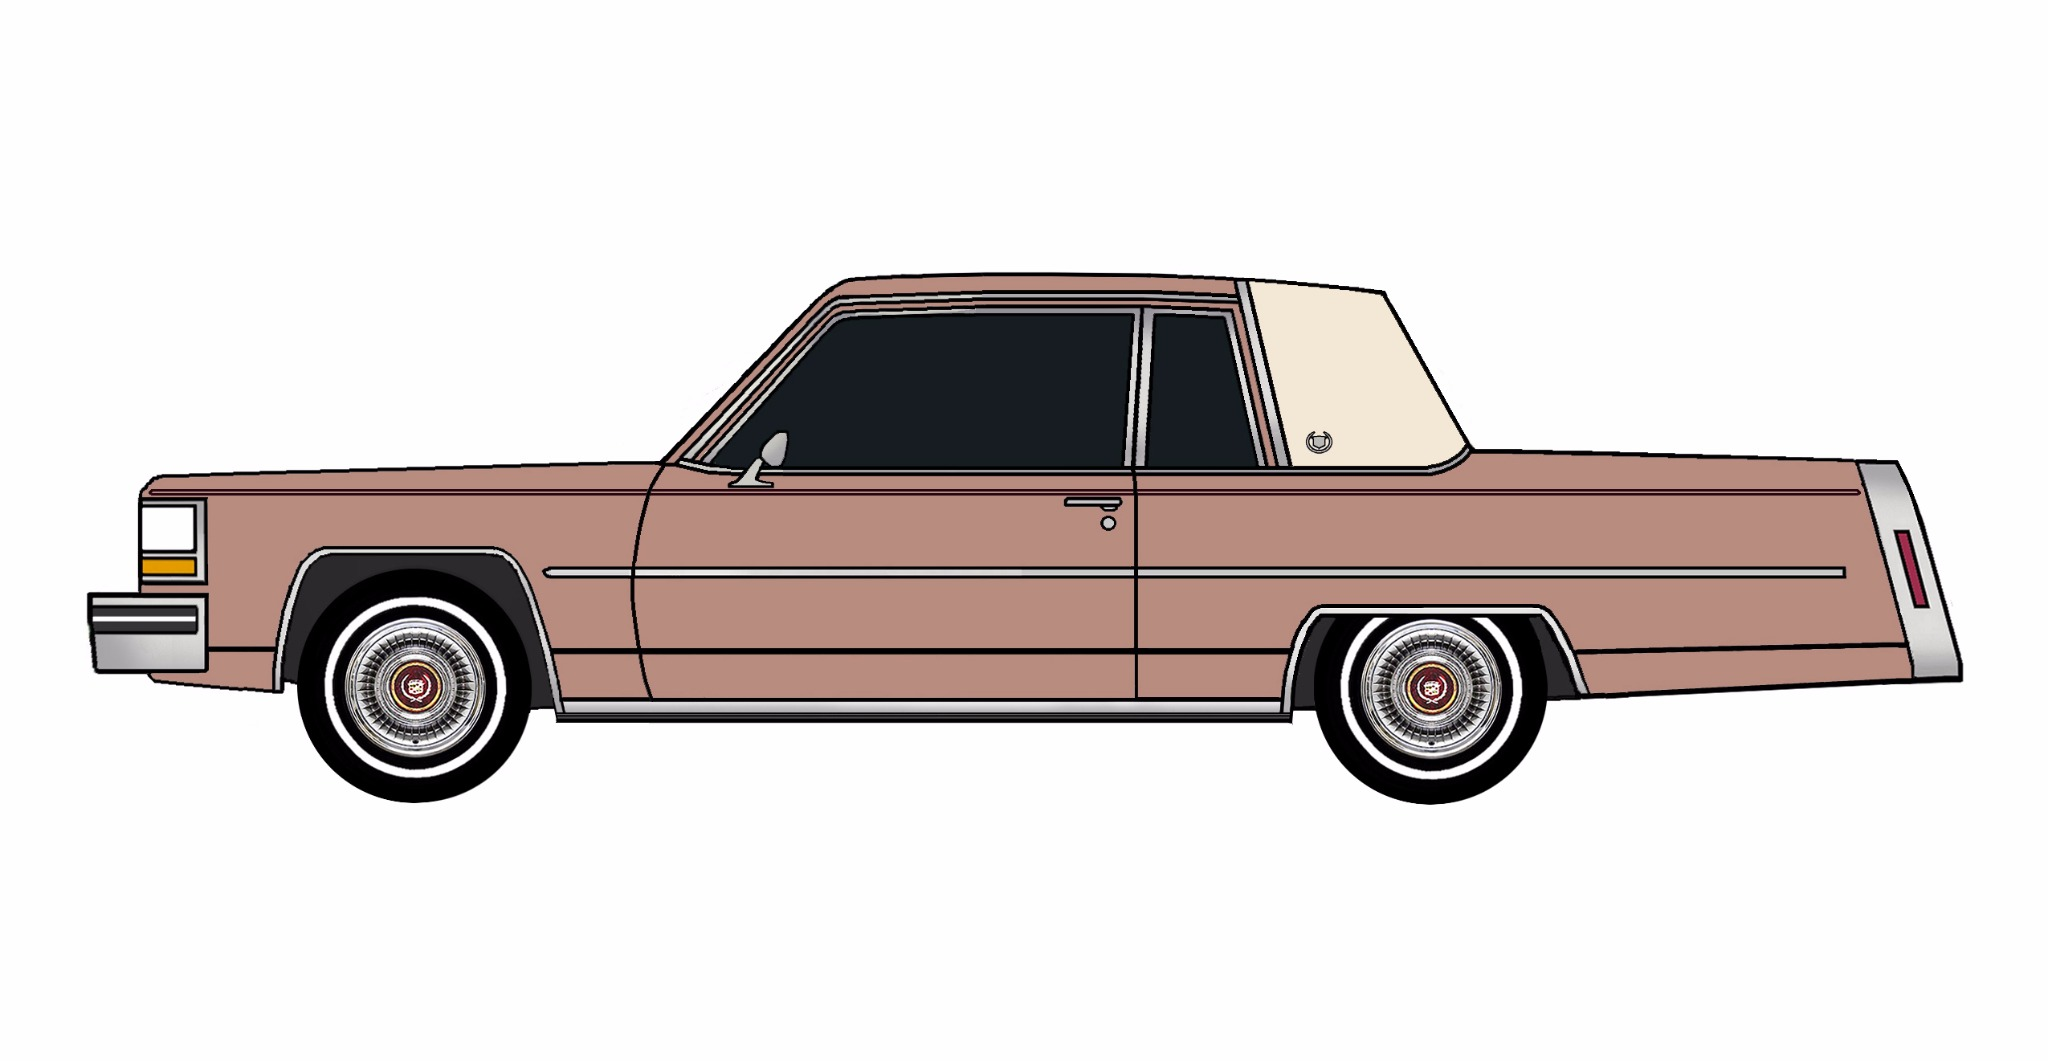 1981 Cadillac Coupe Deville CLAY ROSE